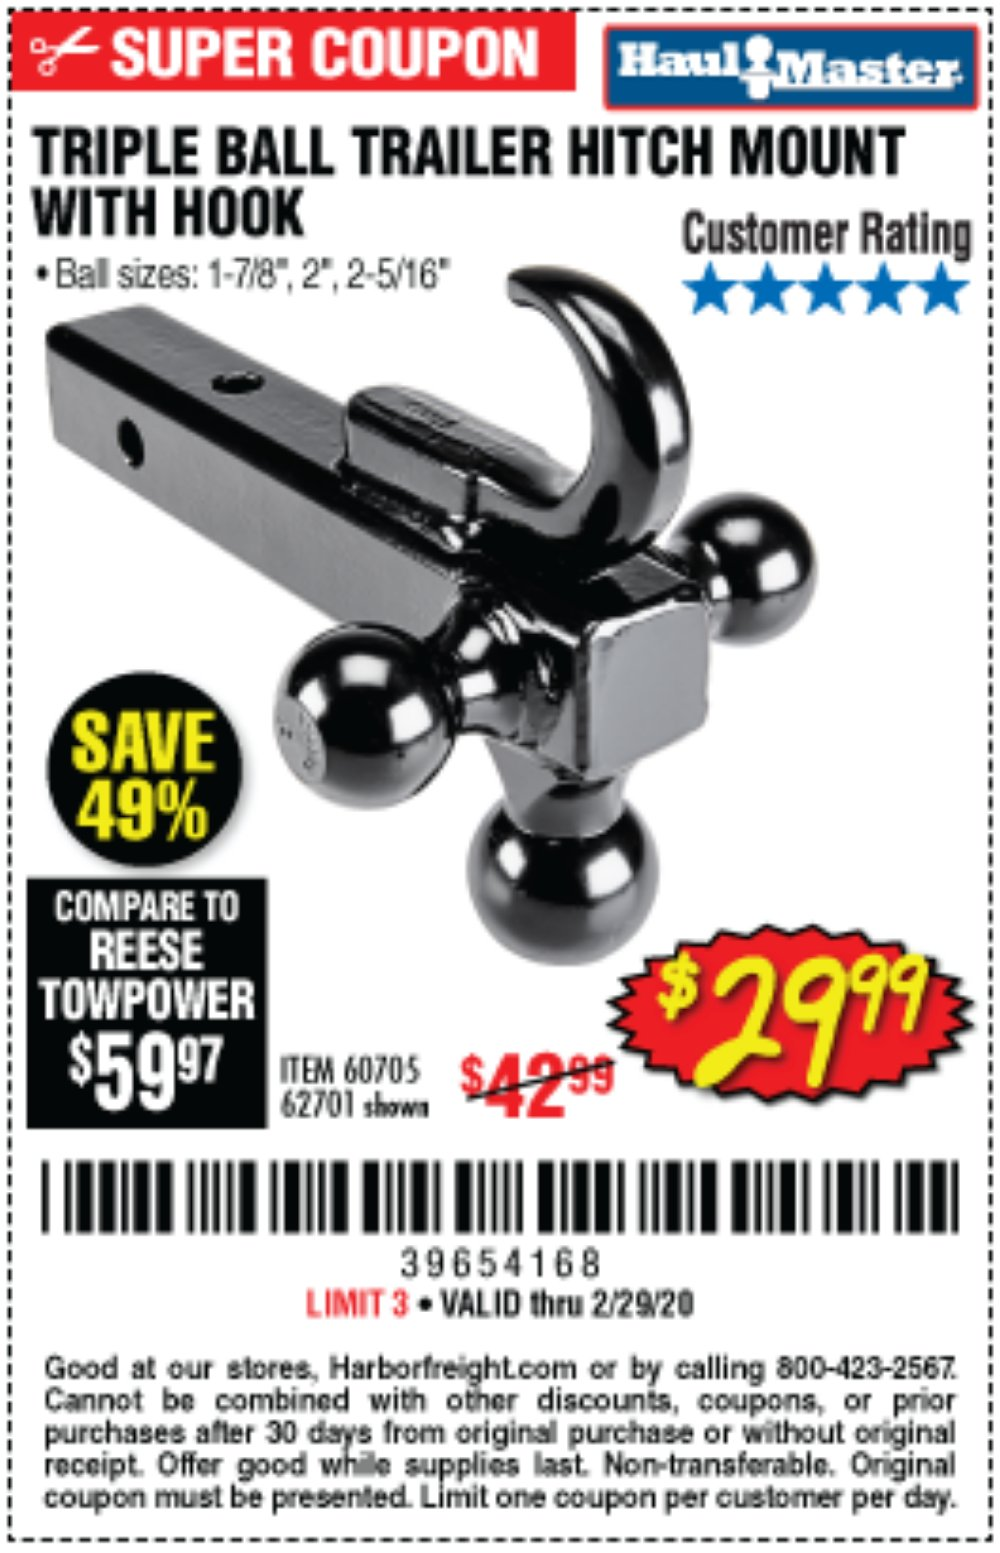 Harbor Freight Coupon, HF Coupons - Triple Ball Trailer Hitch Mount With Hook